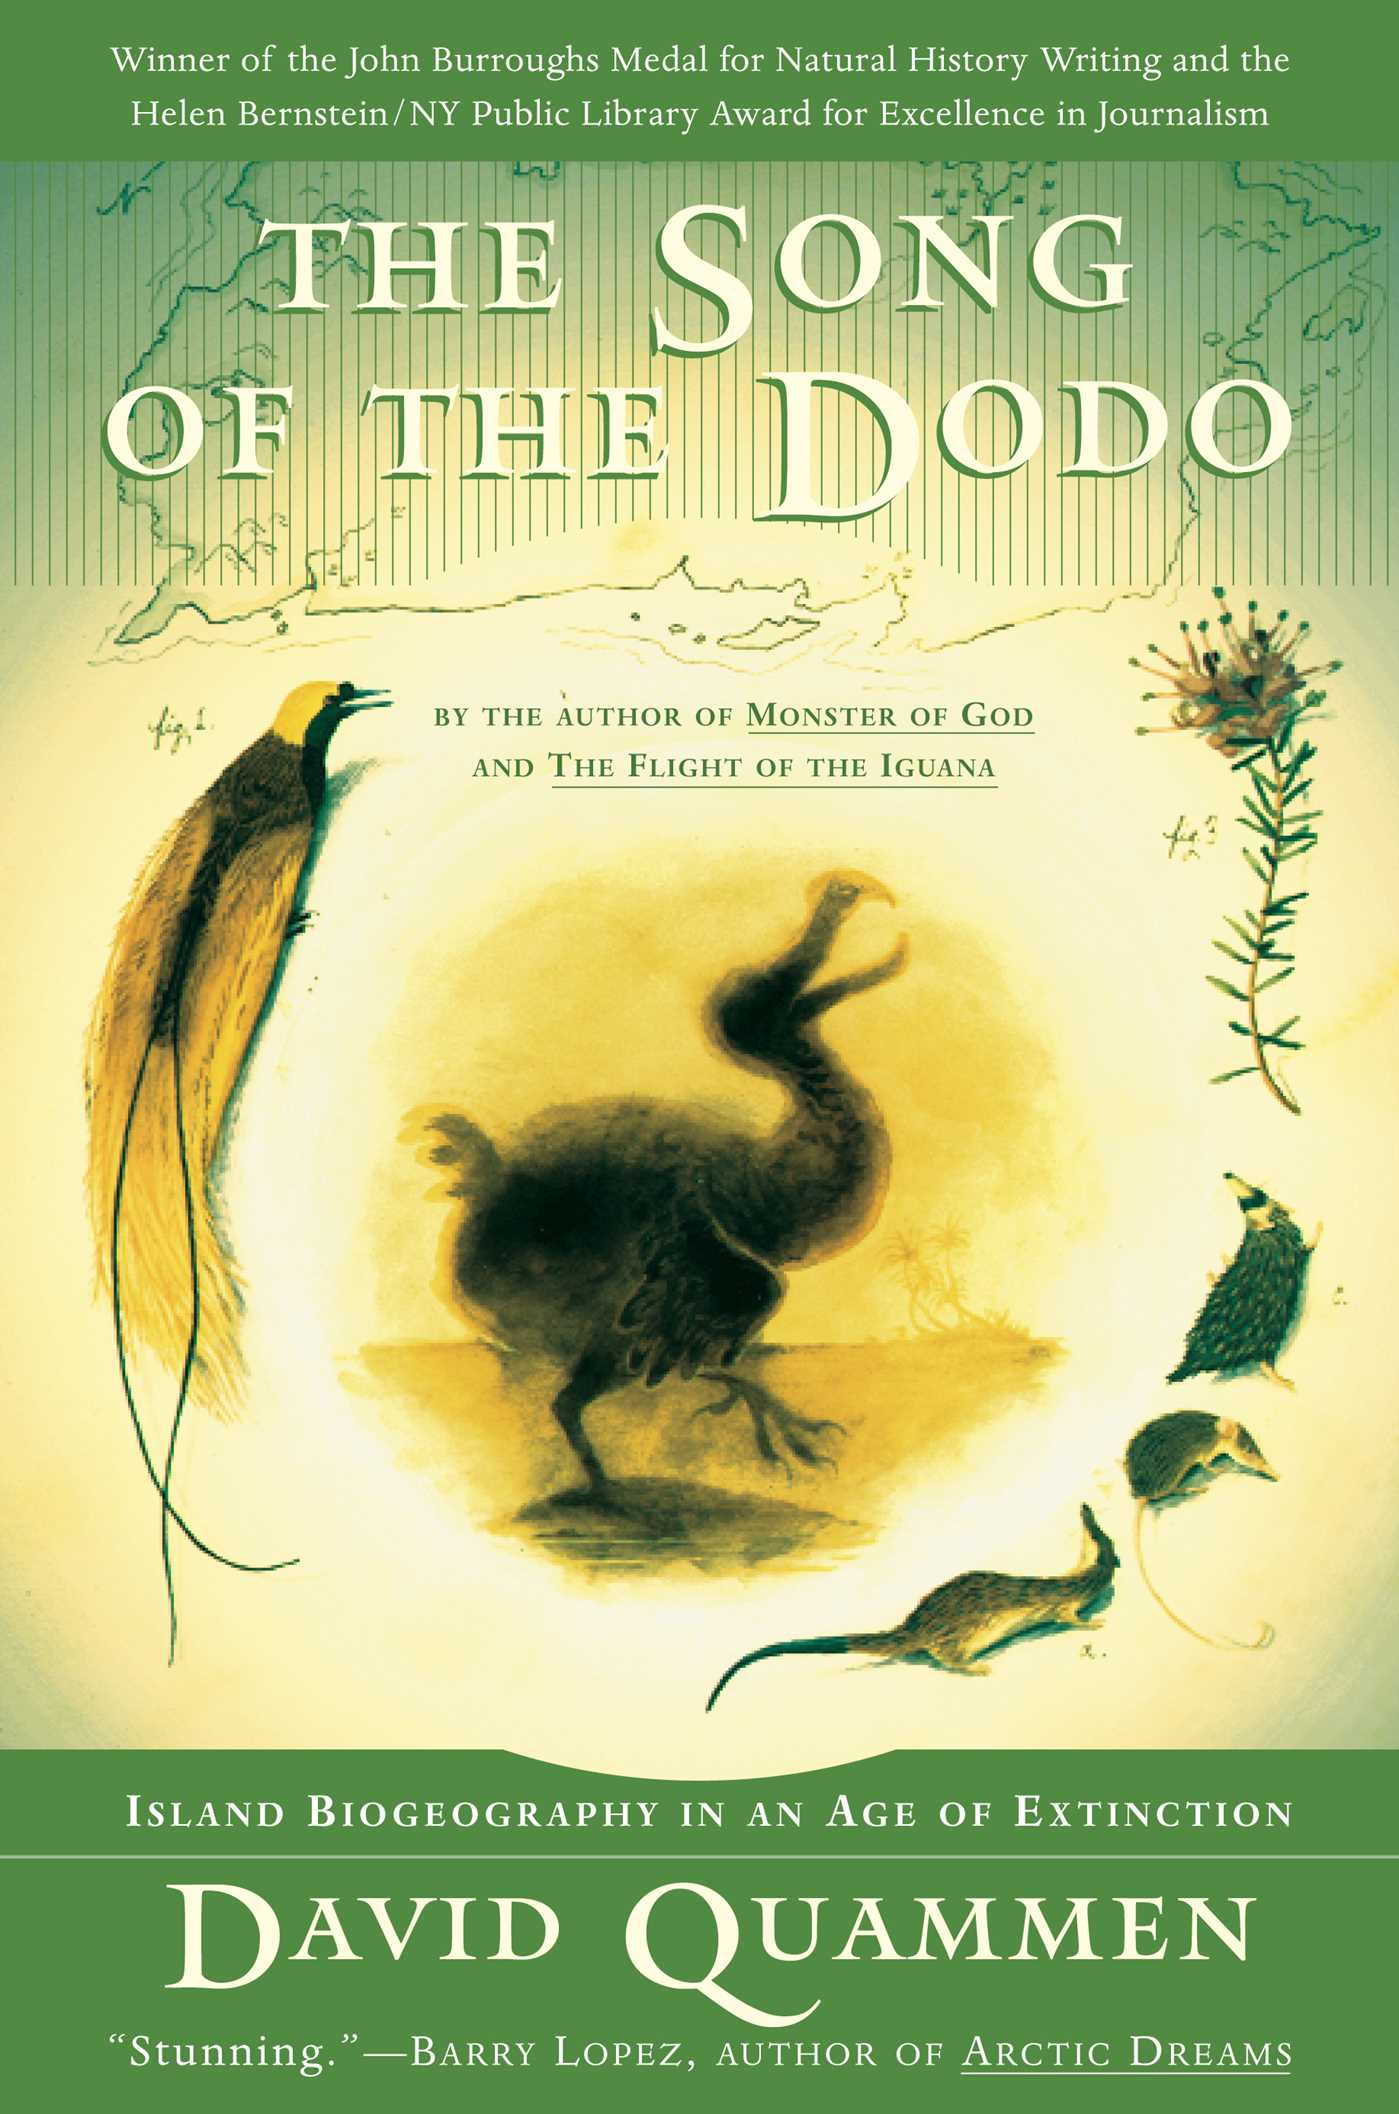 Song-of-the-dodo-9781439124963_hr